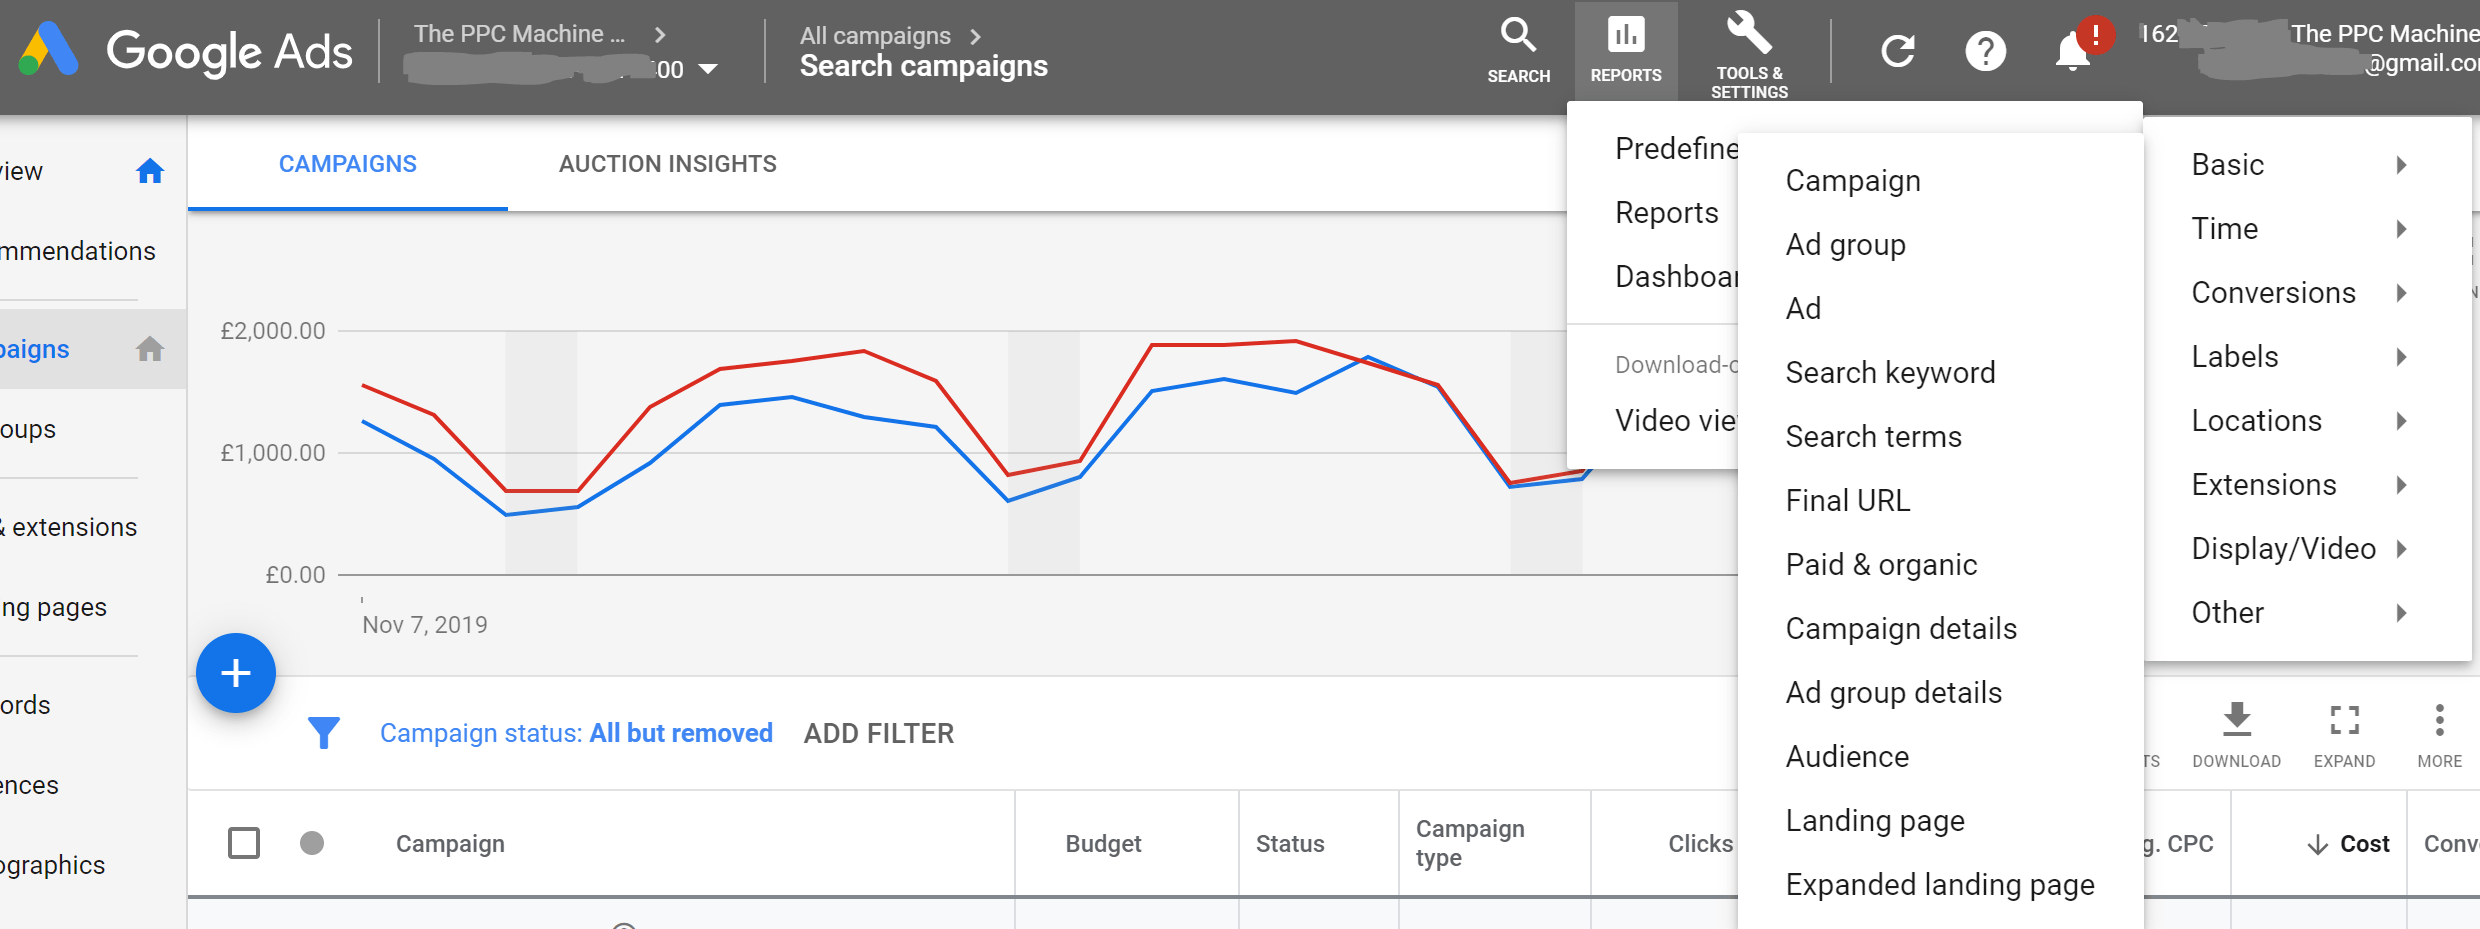 Dimensions are the pre-defined reports that are built into Google Ads